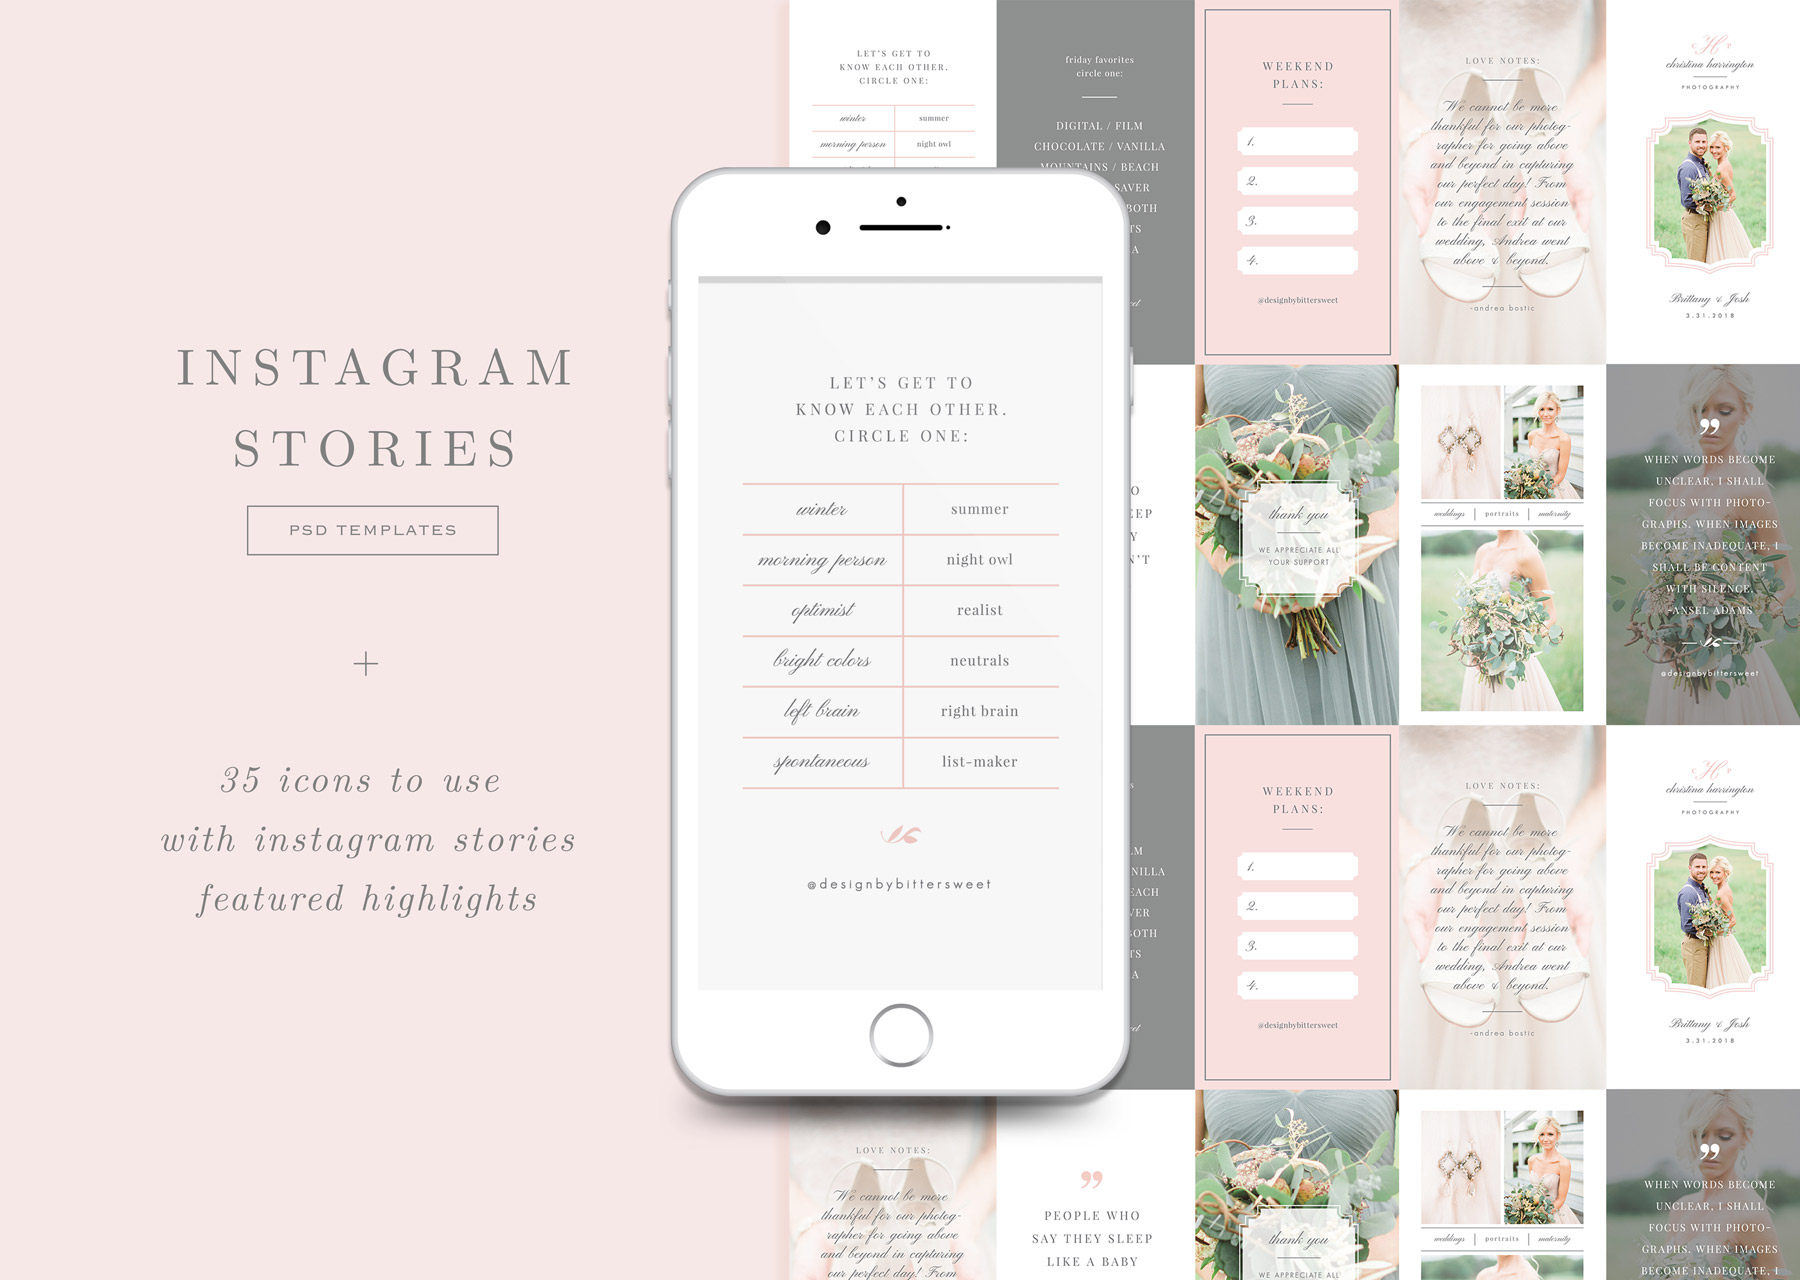 Instagram Stories Templates + Icons for IG Highlights - Eucalyptus